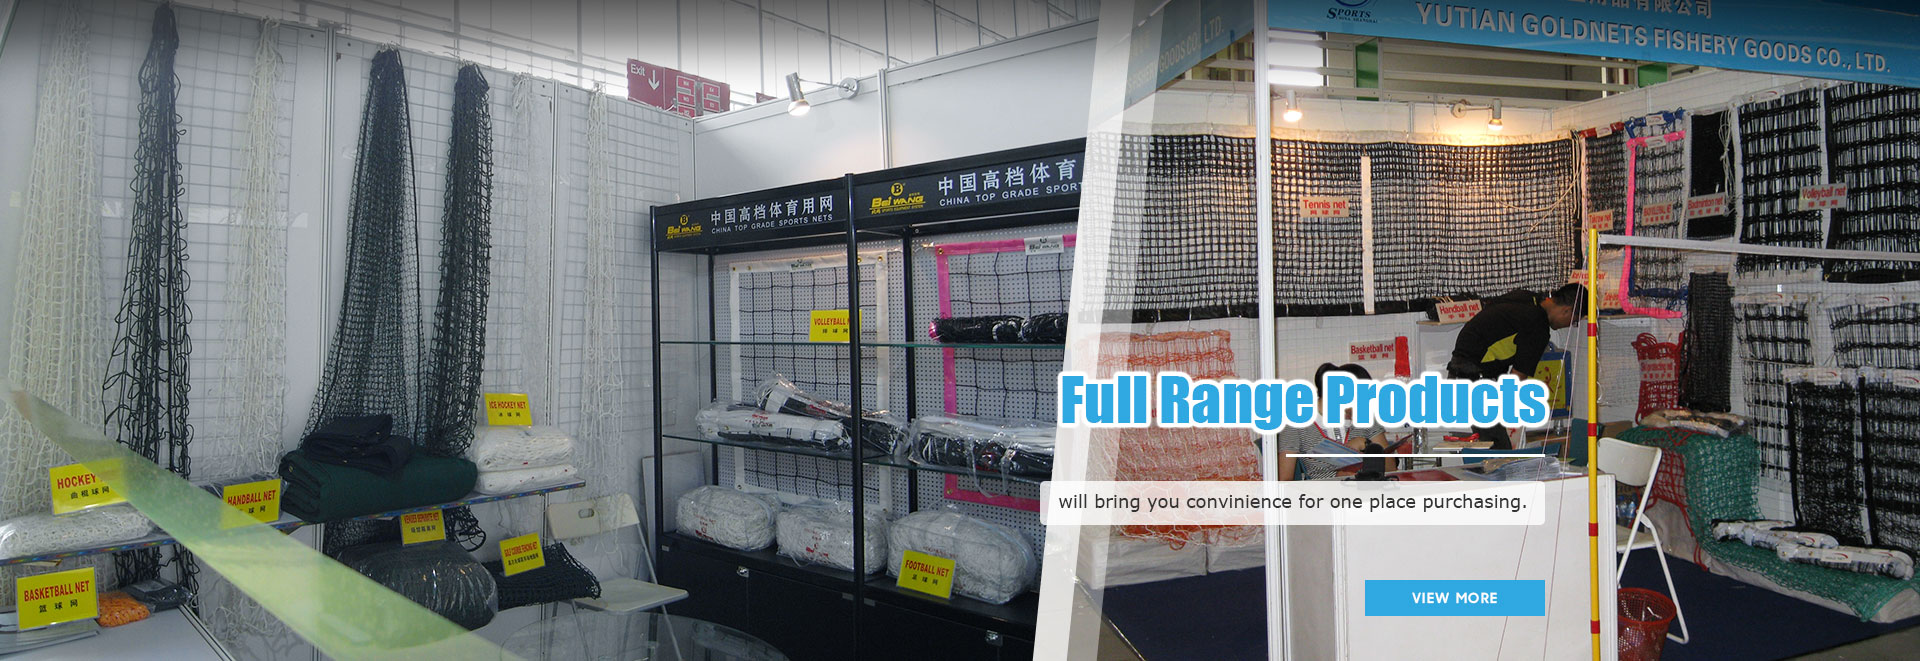 Tangshan Goldnets Fishery Goods Co., Ltd